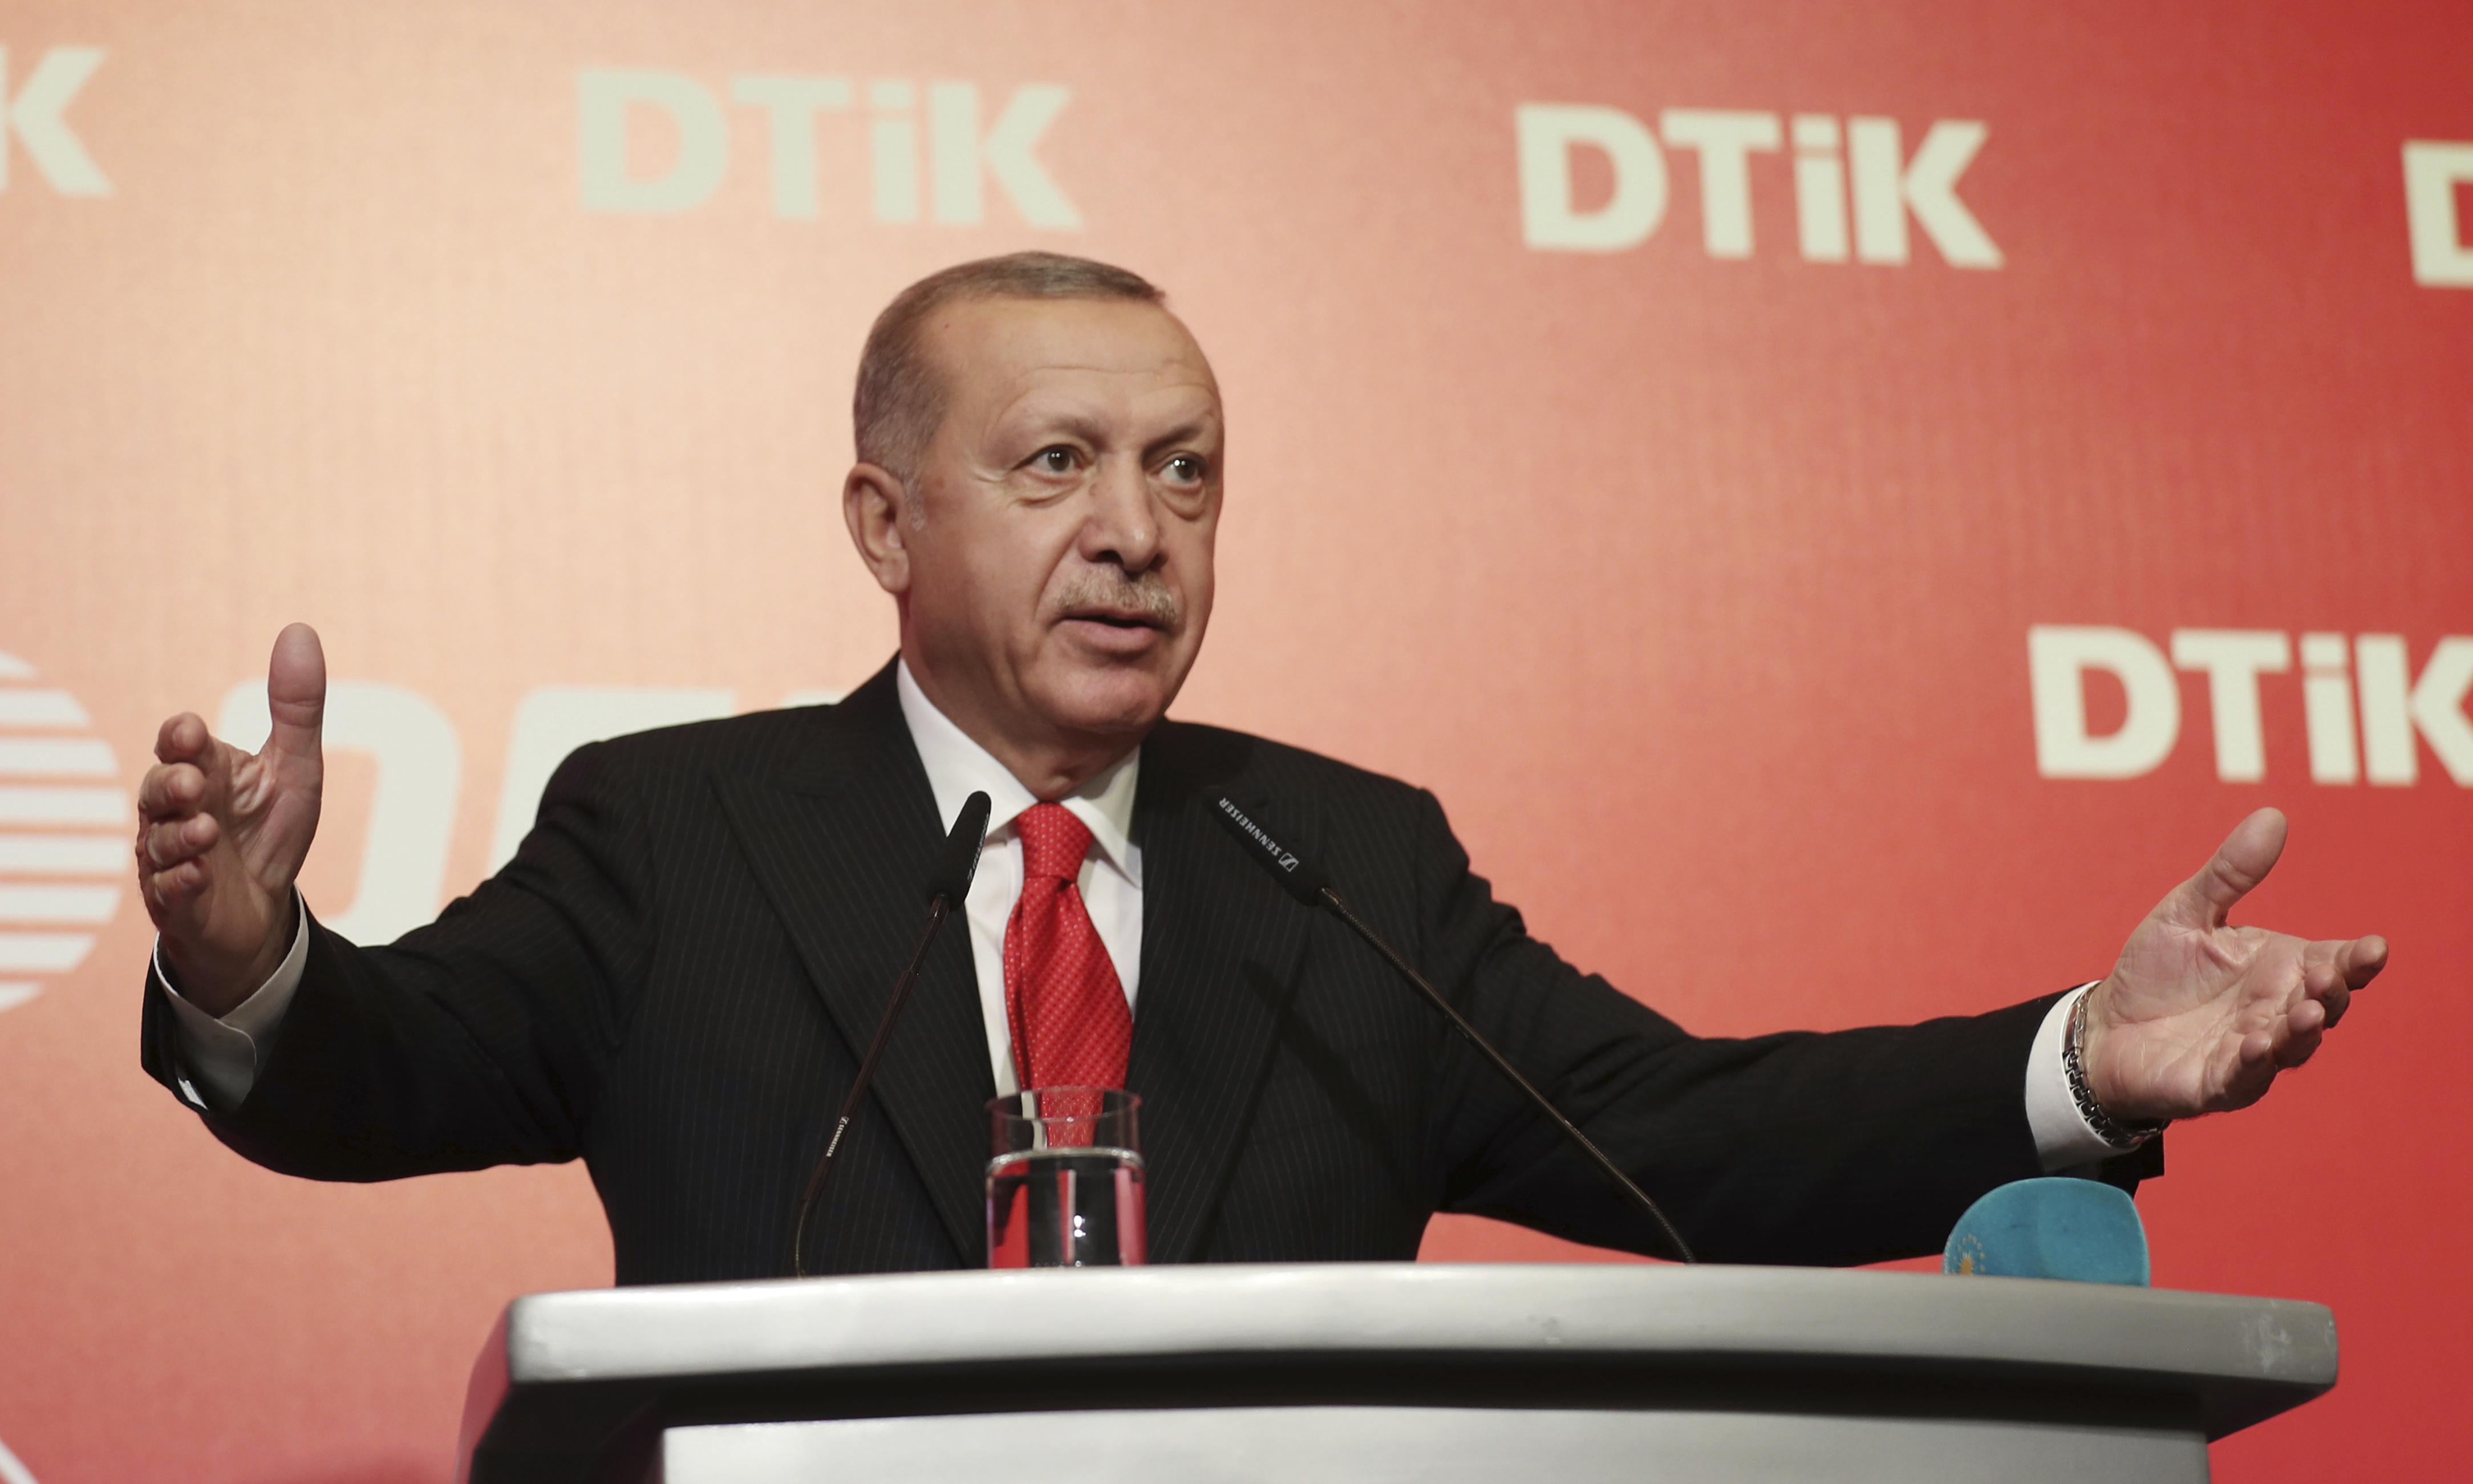 Erdoğan's calamitous Syrian blunder has finally broken his spell over Turkey